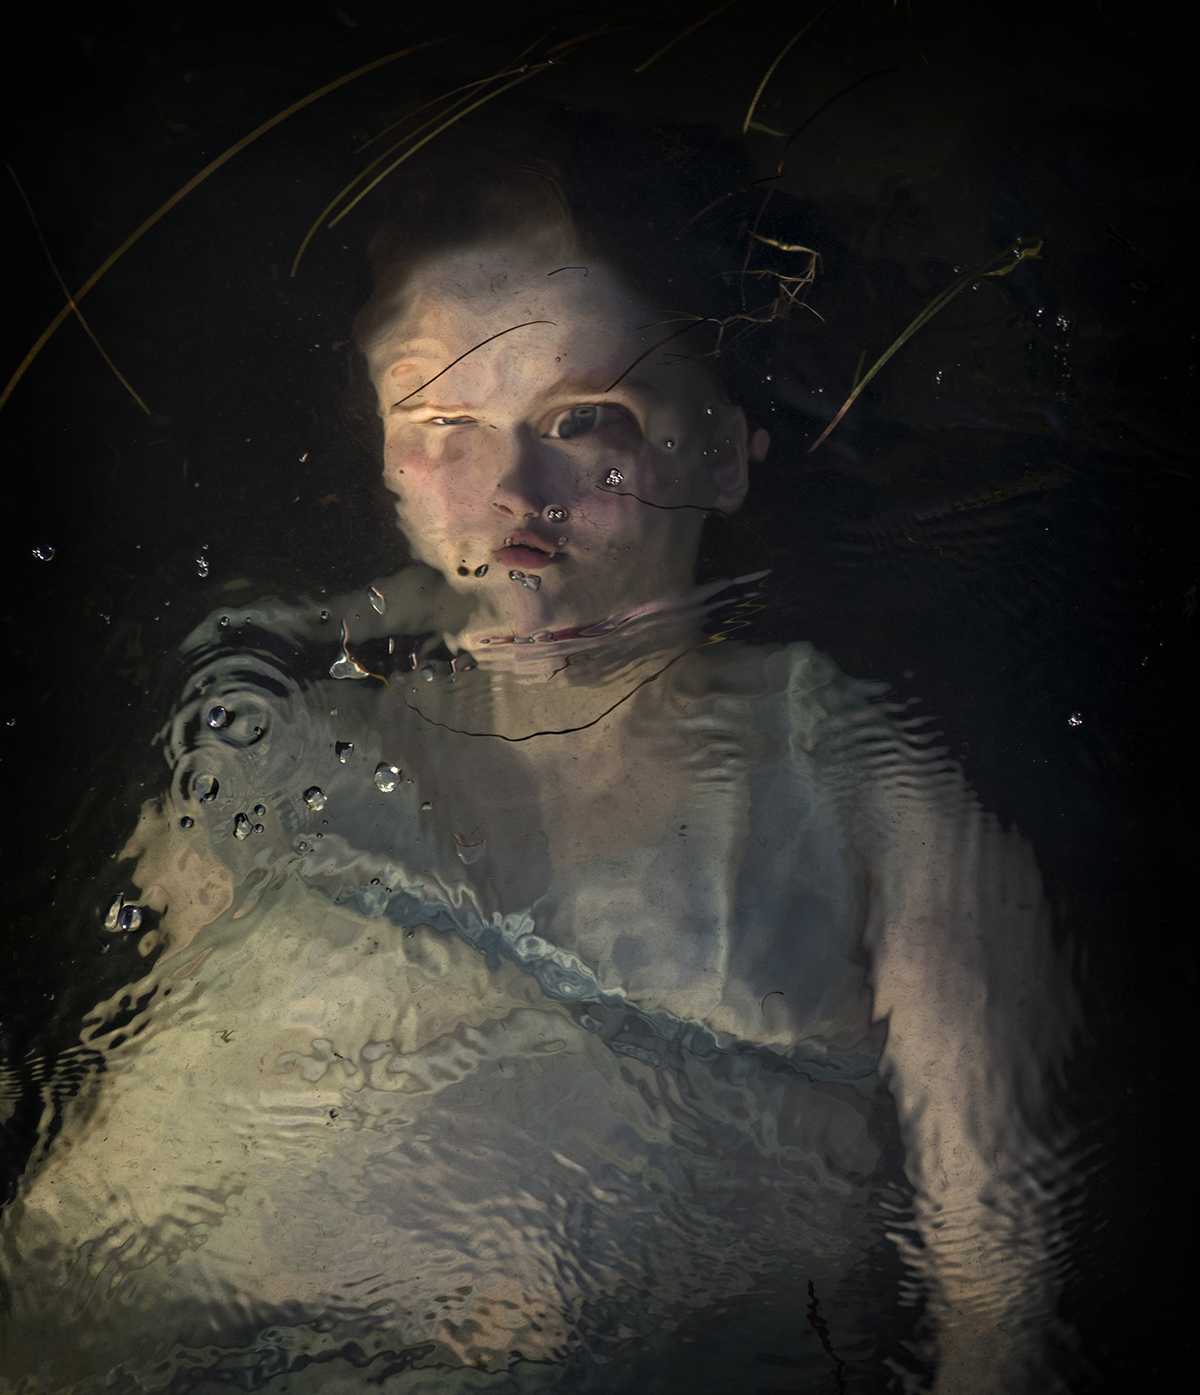 Ethereal Underwater Photographs by Elinleticia Högabo Glimpse the Subjects Below the Surface